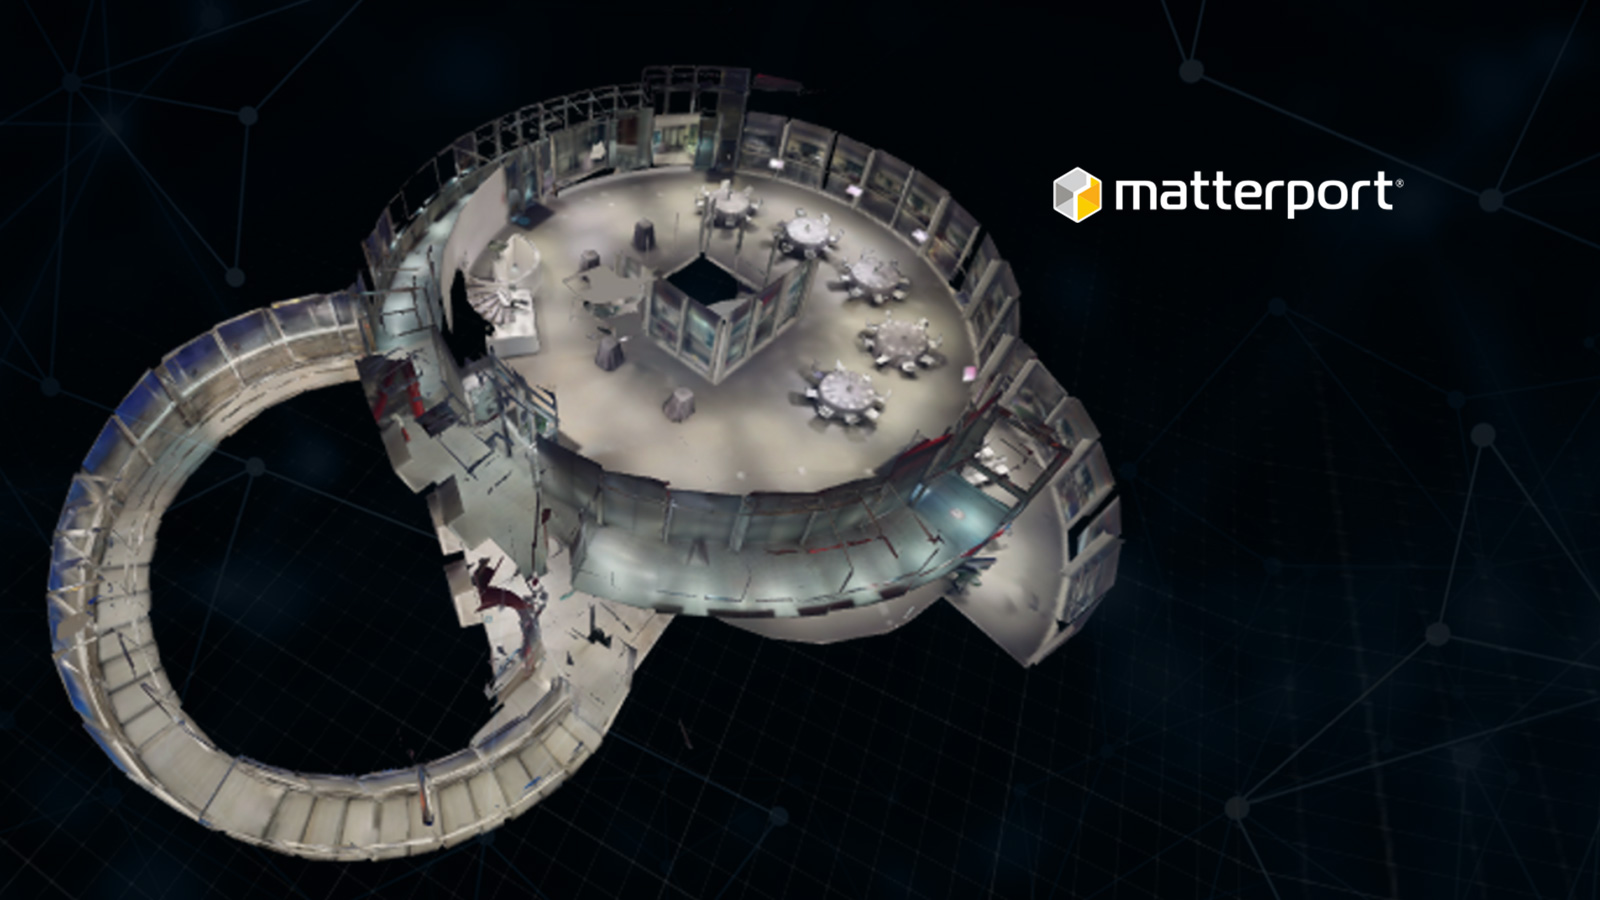 Matterport Unveils New Cloud Platform, Unlocking to 3D